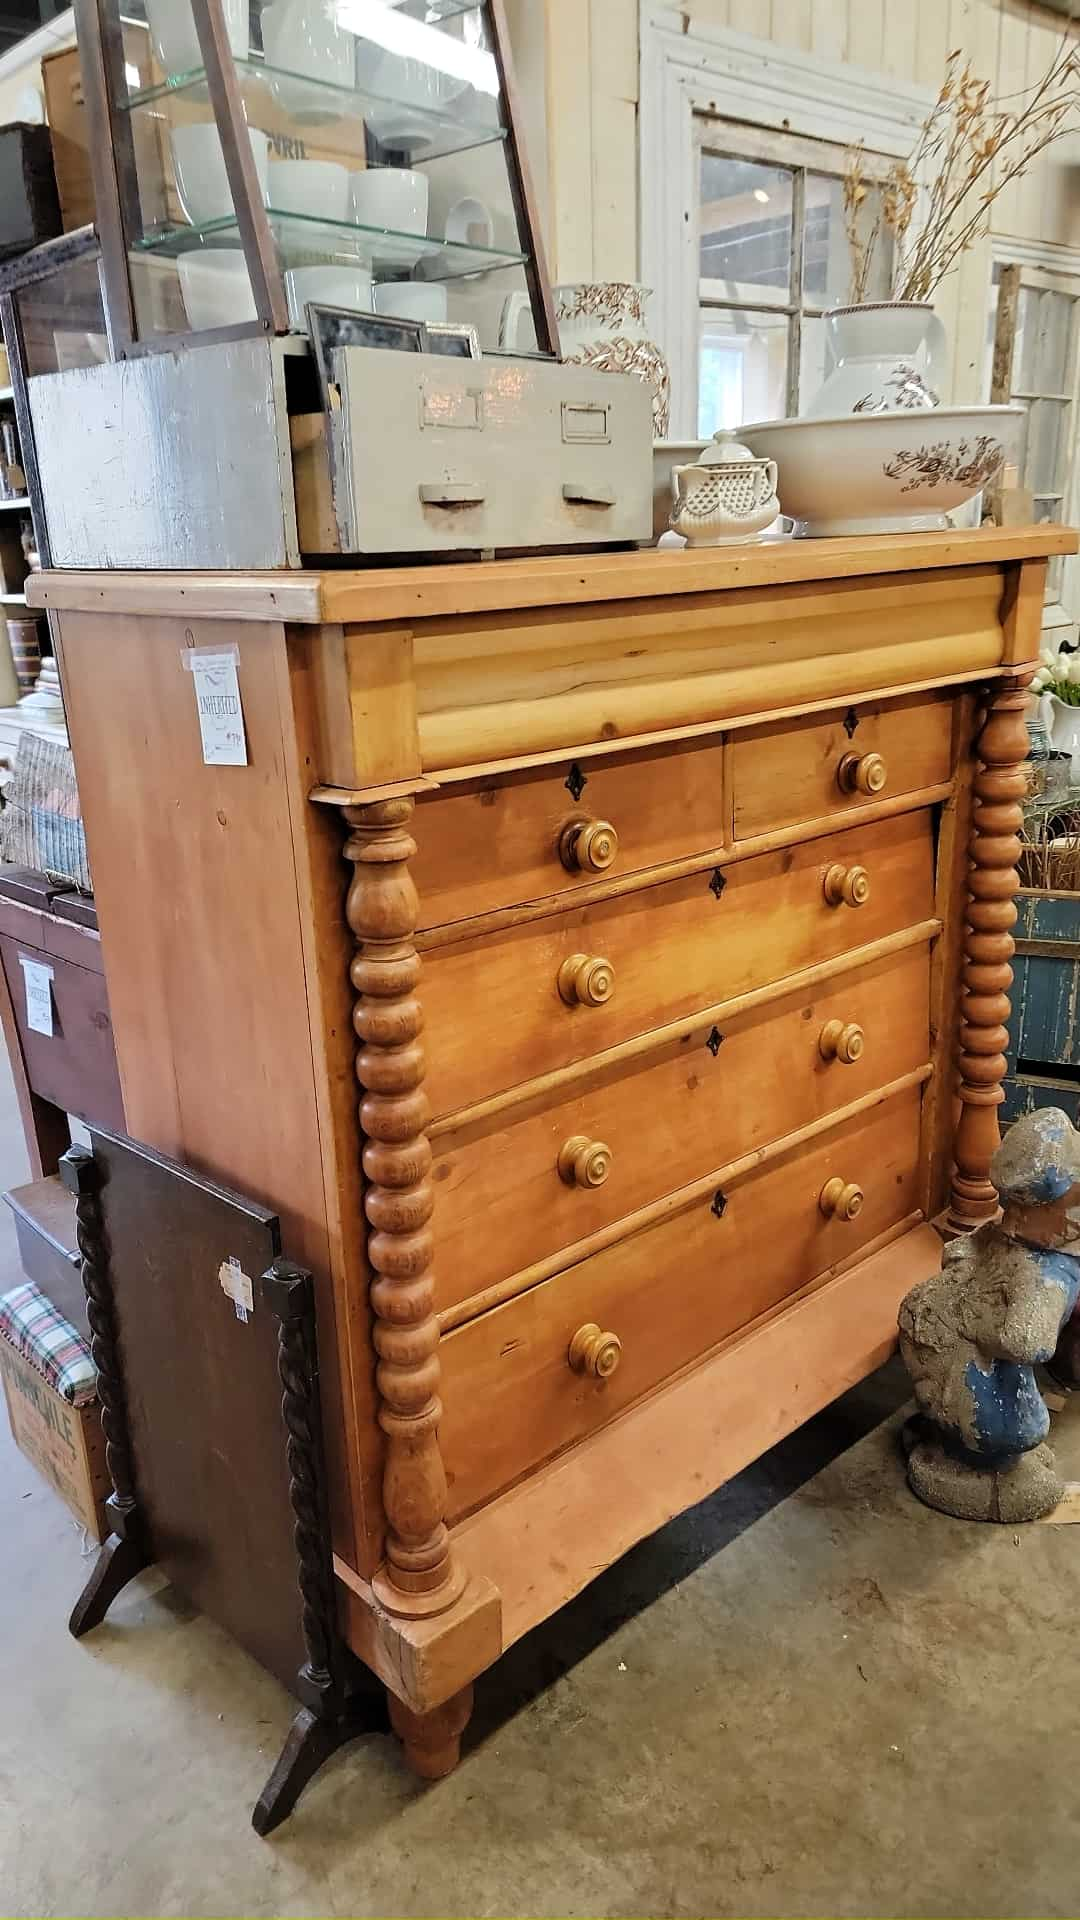 incredible antique chest at an antique store